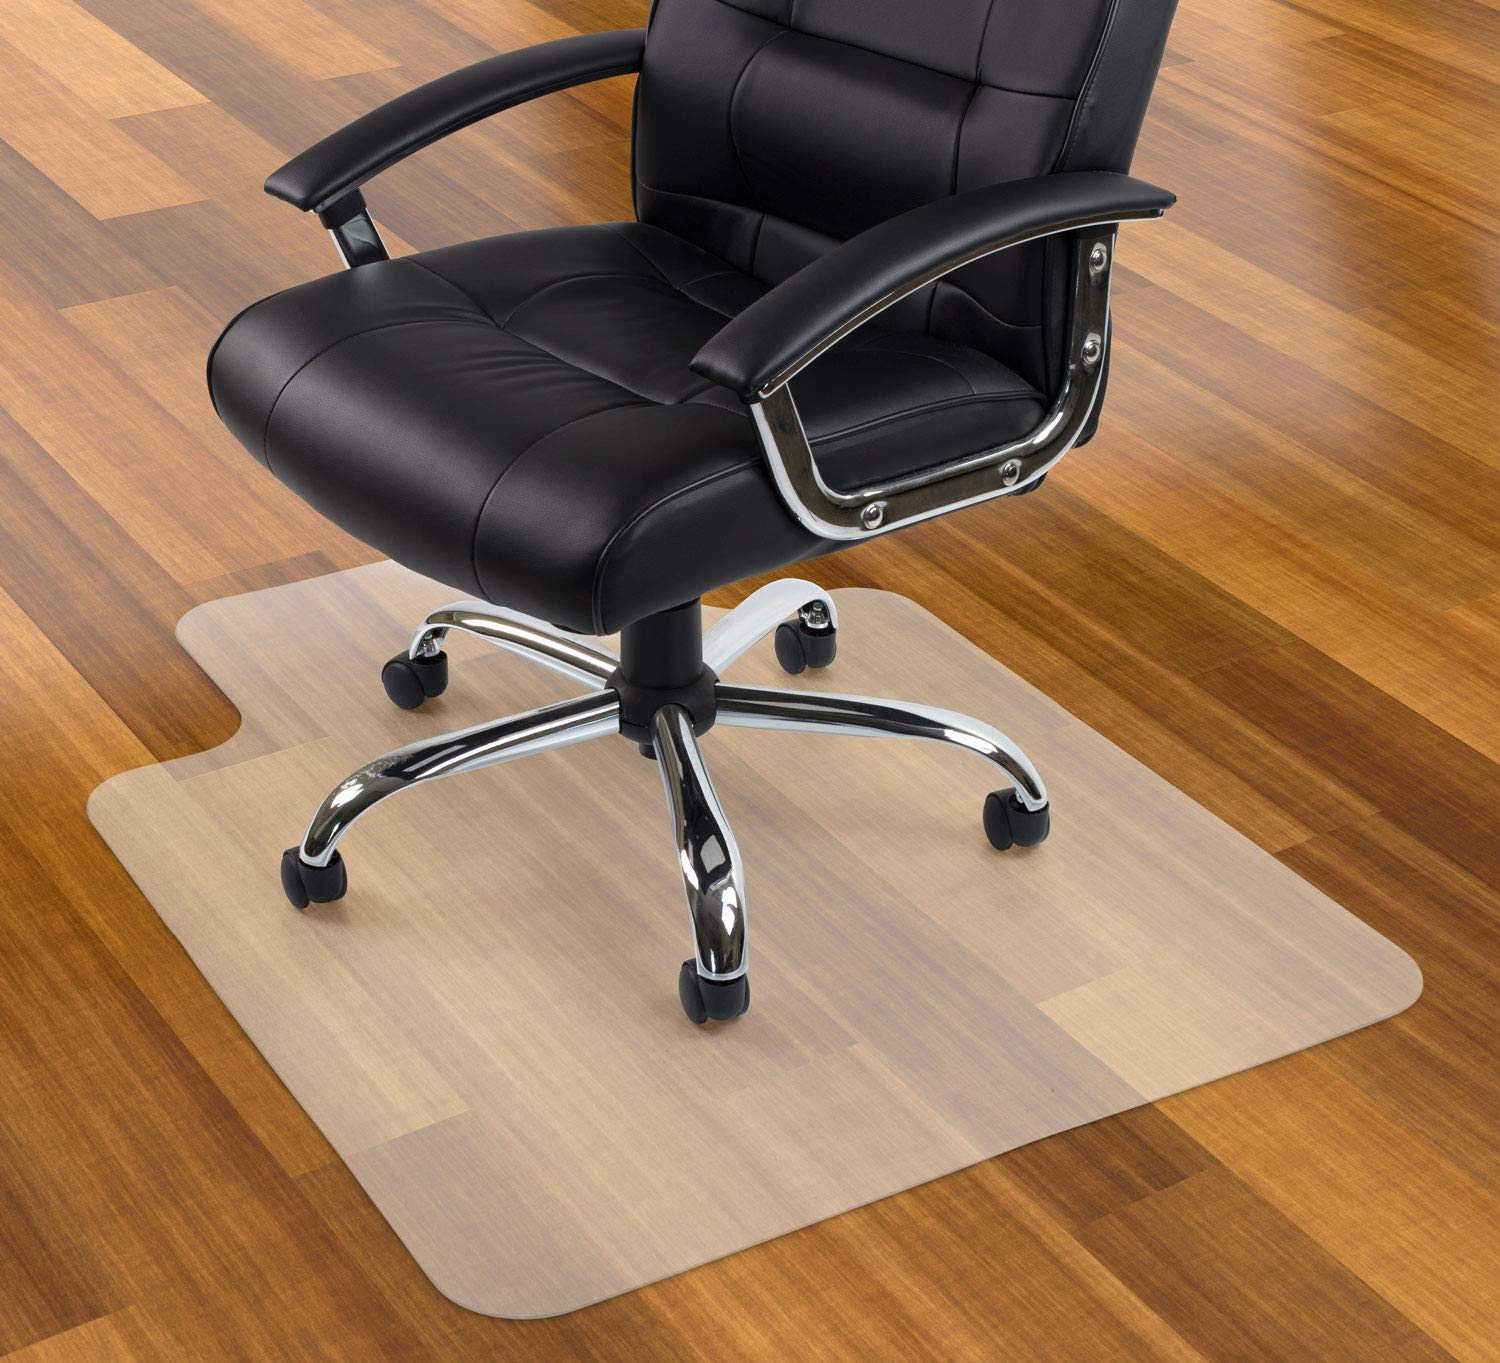 """Mount-It! Office Chair Mat for Hardwood Floor, Clear Computer Chair Floor Protector, Use in Home or Office on Wood, Tile, Linoleum, Vinyl, or Carpet, 47"""" x 35.5"""""""